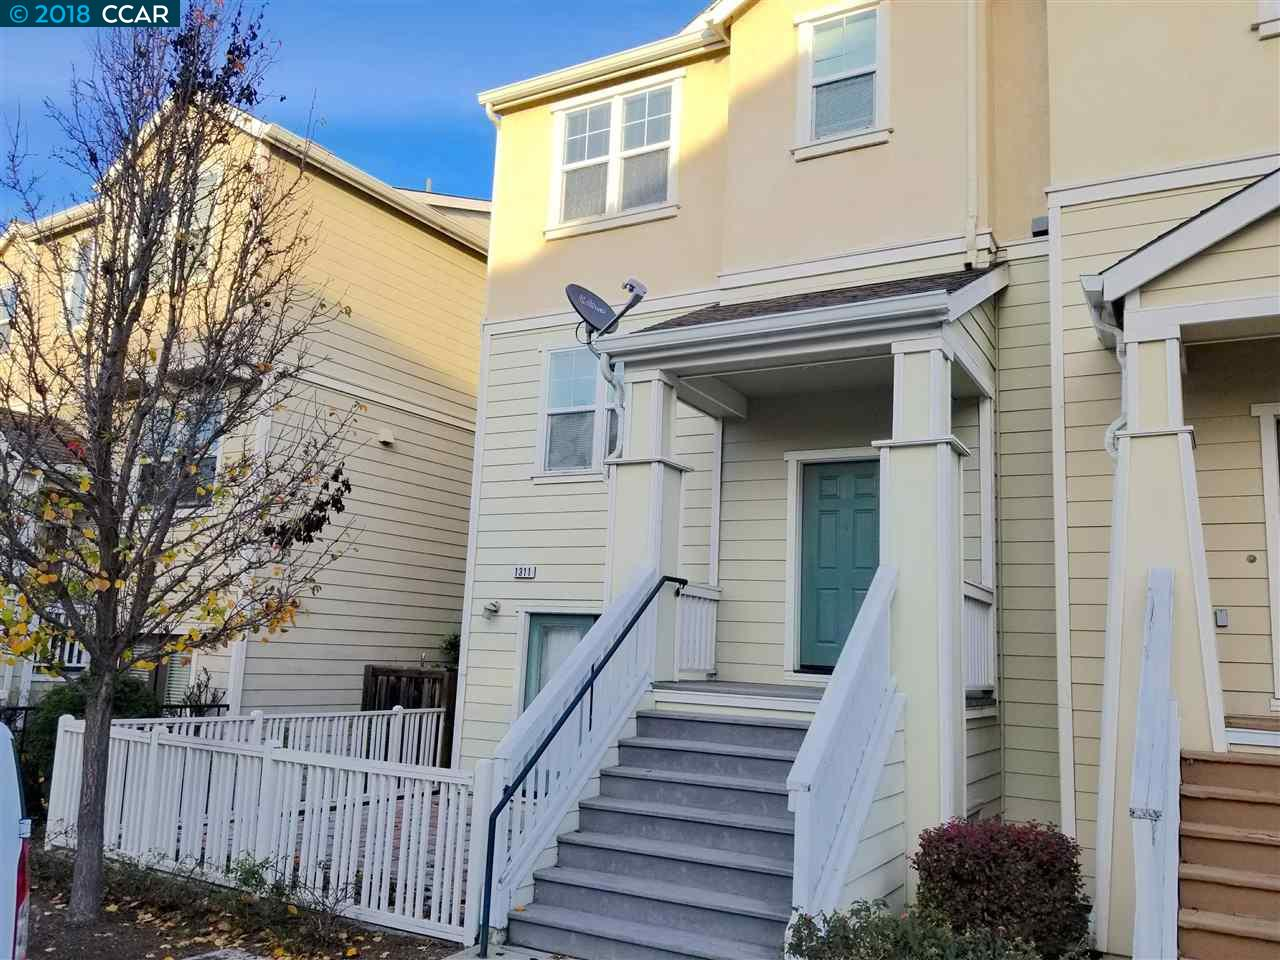 1311 SUMMER LN, RICHMOND, CA 94806